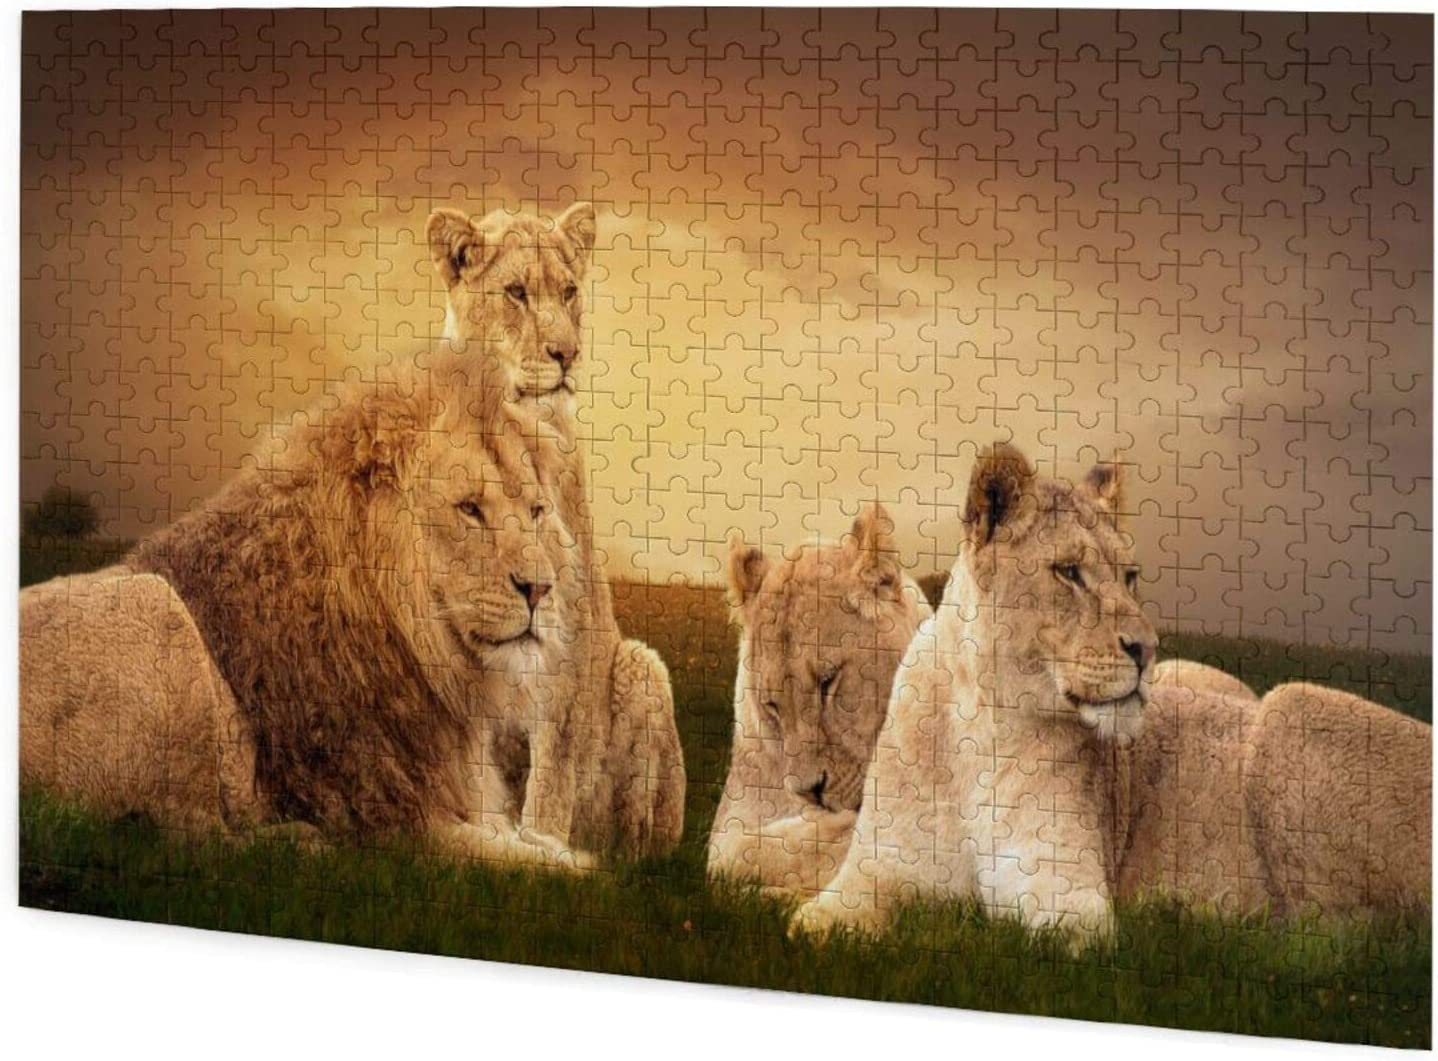 Animal African Lion Jigsaw Puzzles for Adults Children Family Game Gift Home Wall Decor 500pcs Puzzle